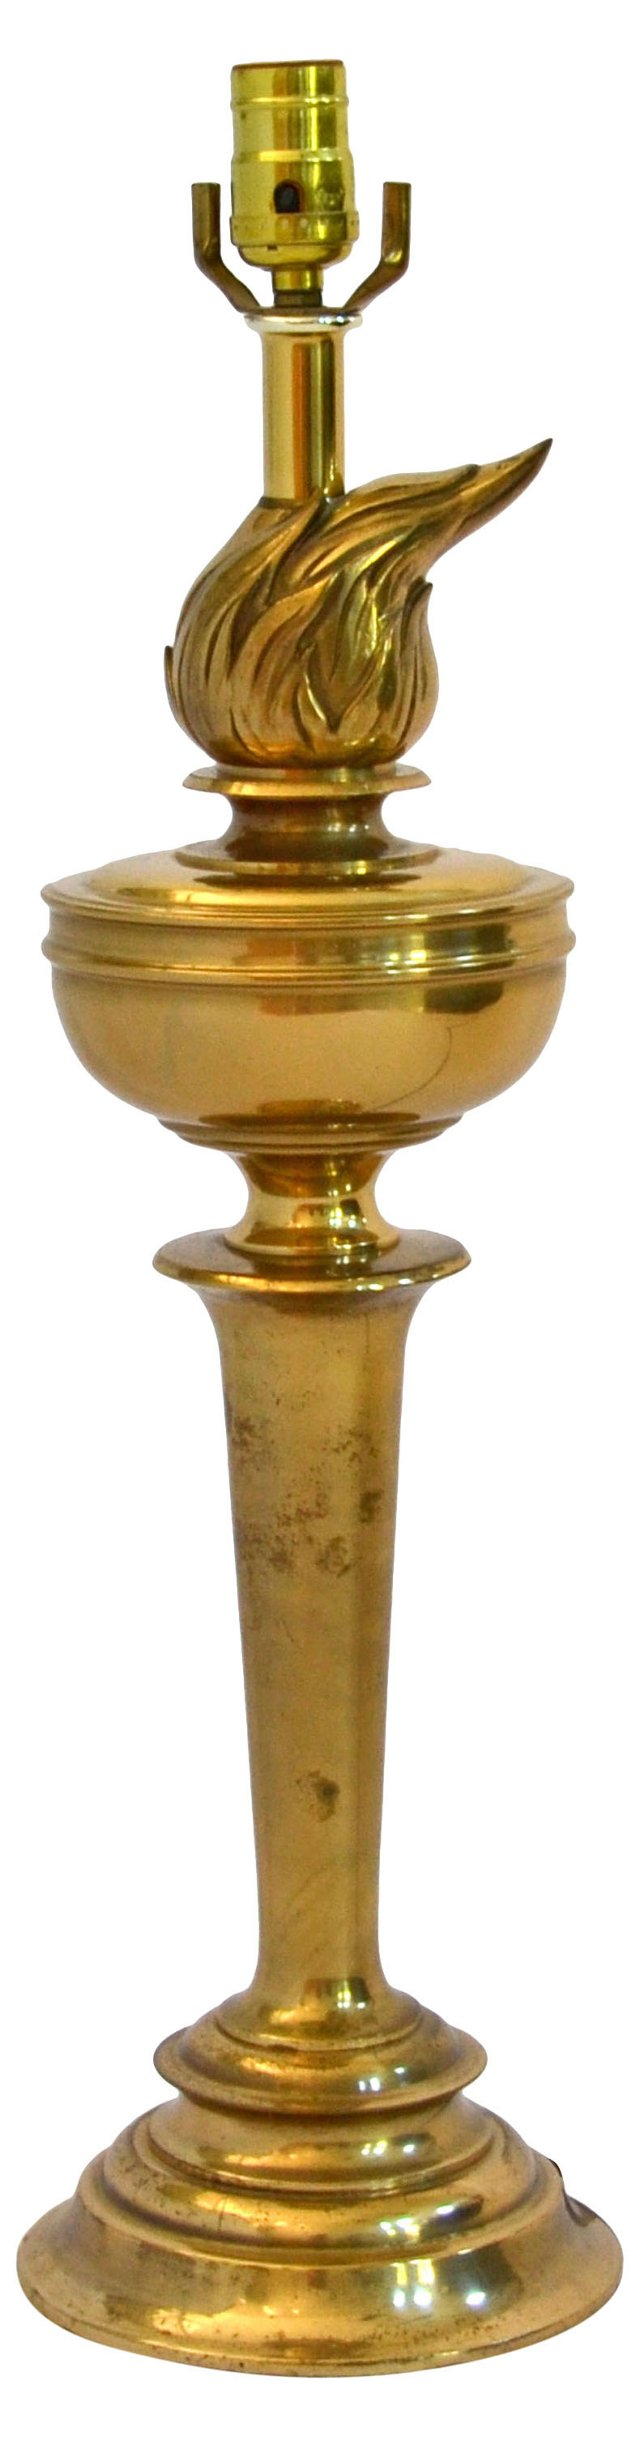 Brass Torch Lamp